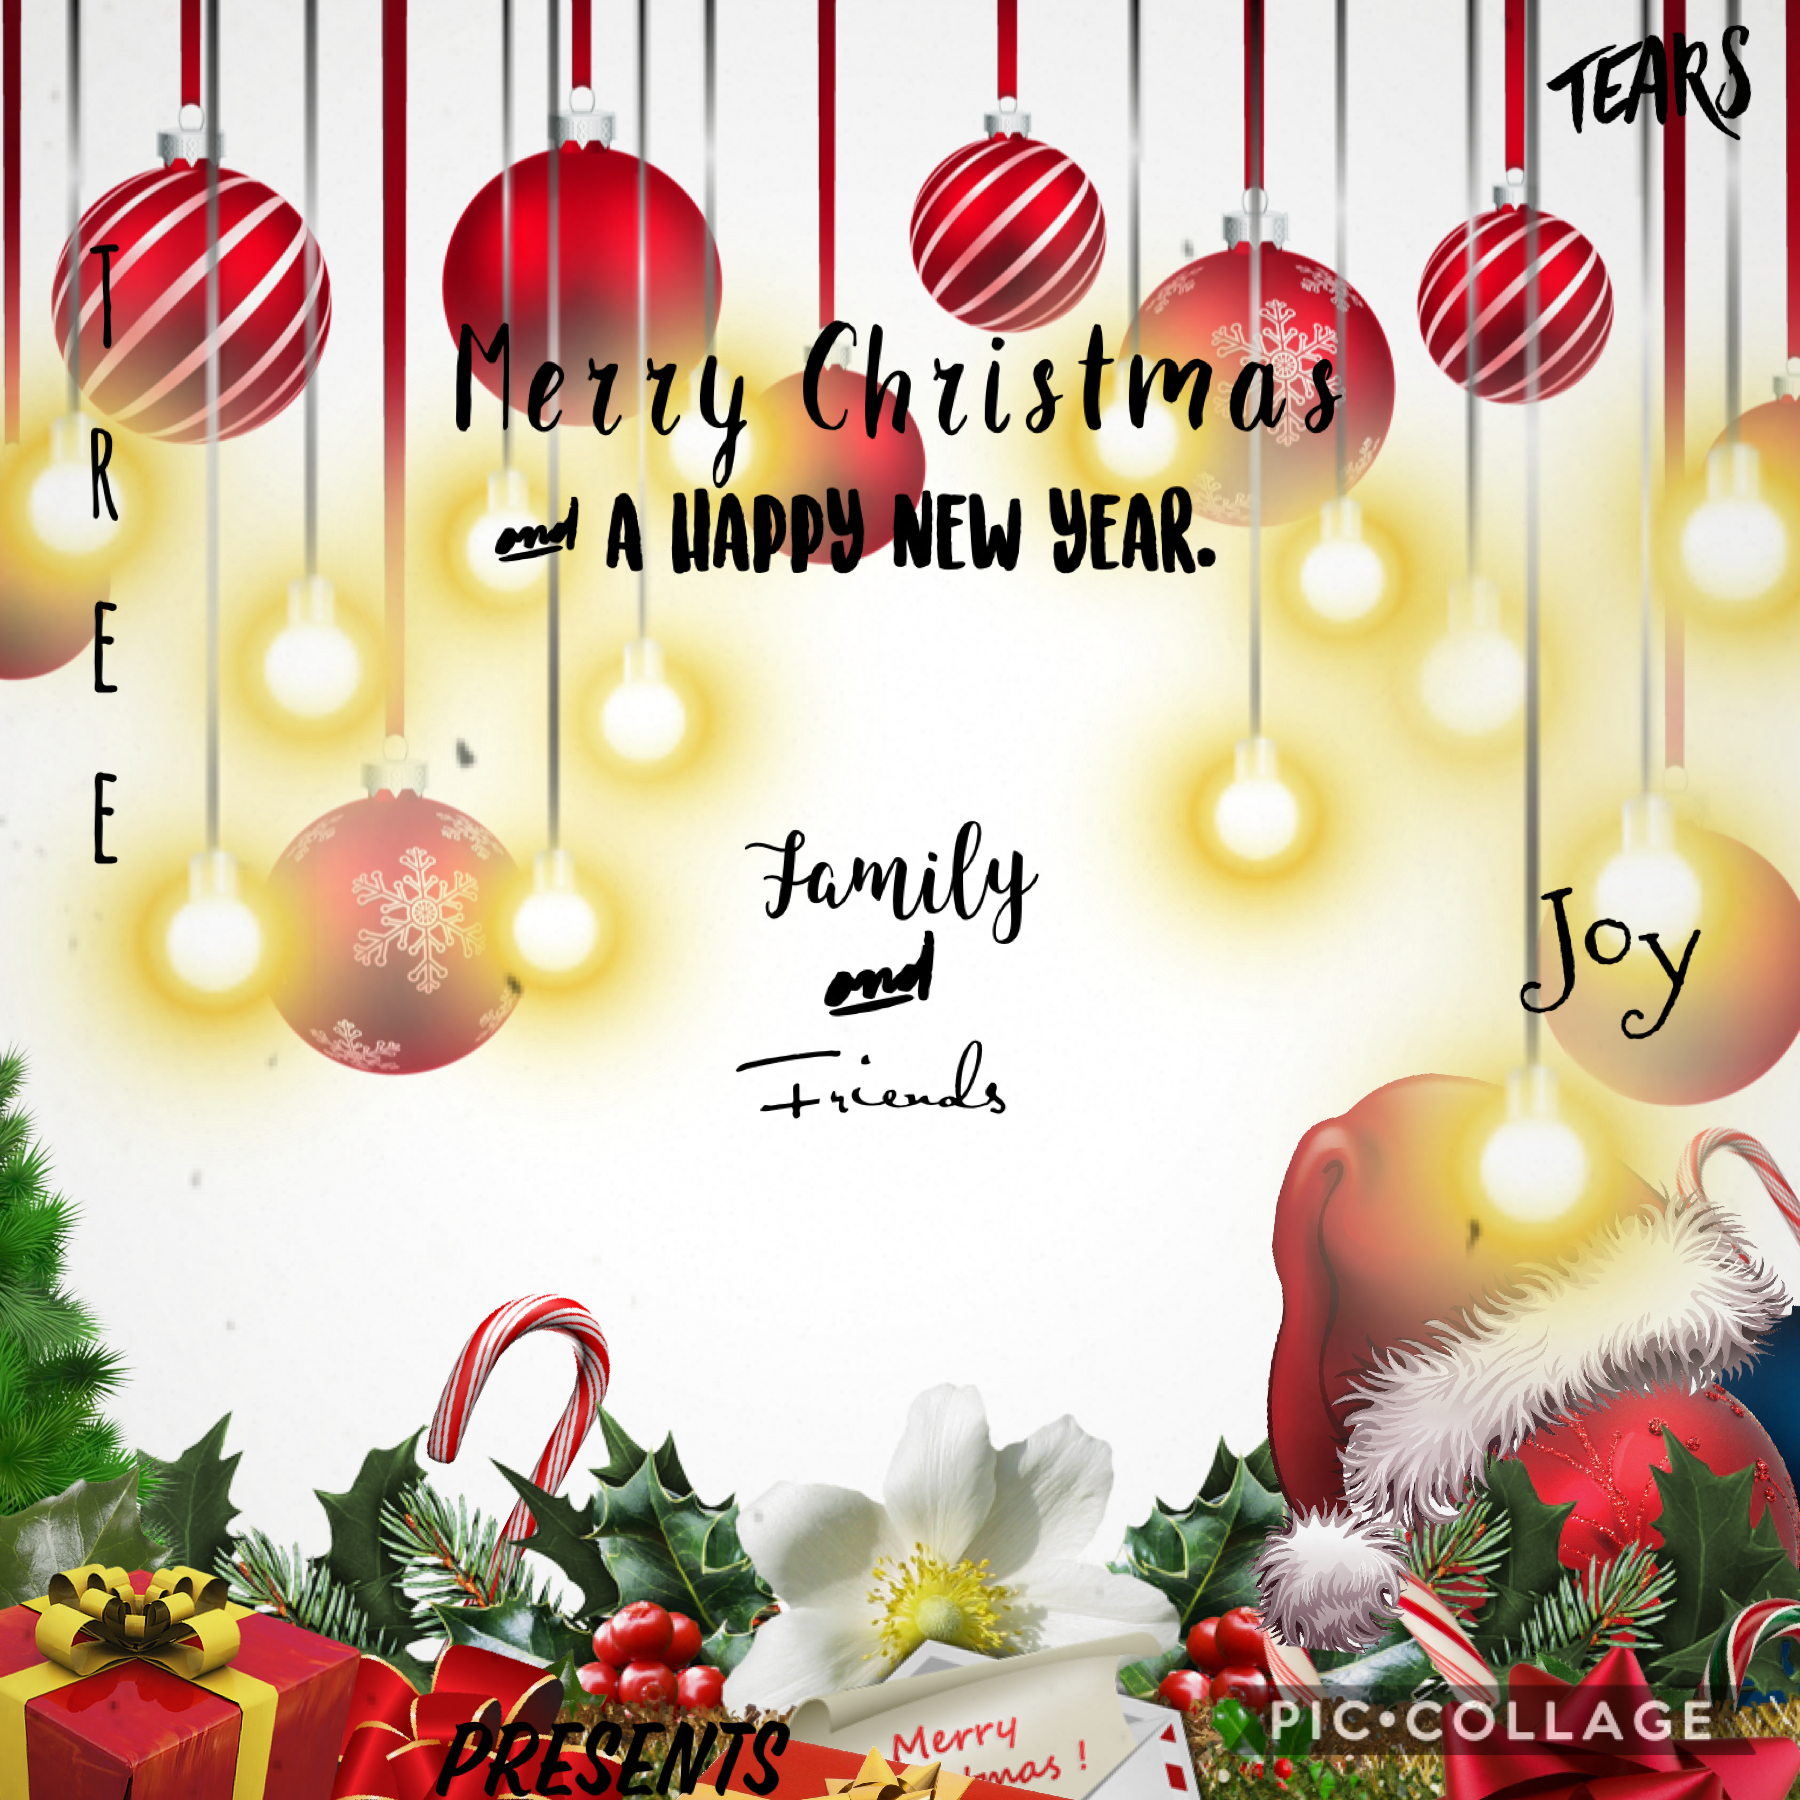 Merry Christmas 🎁 and a happy new year 🎆